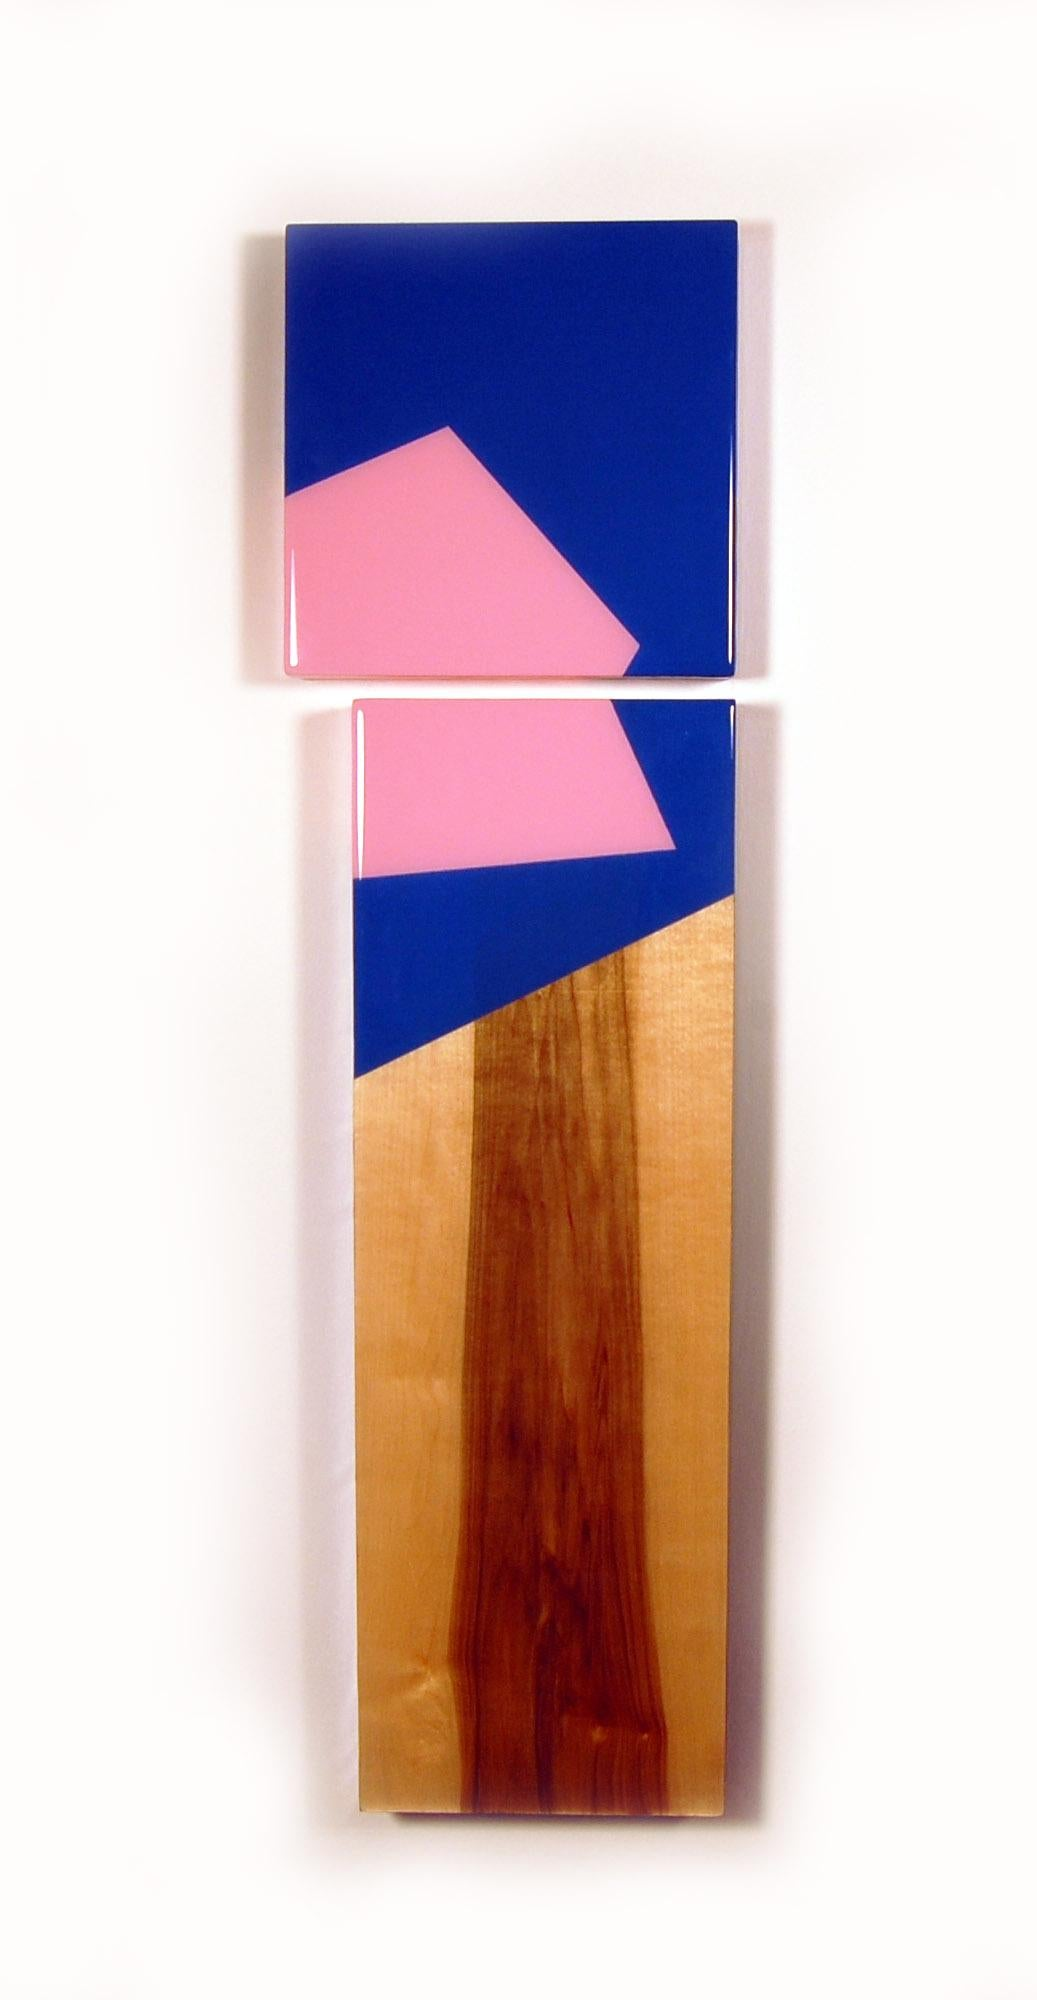 Puzzle 98, David E. Peterson, Contemporary Colorful Wooden Wall Sculpture